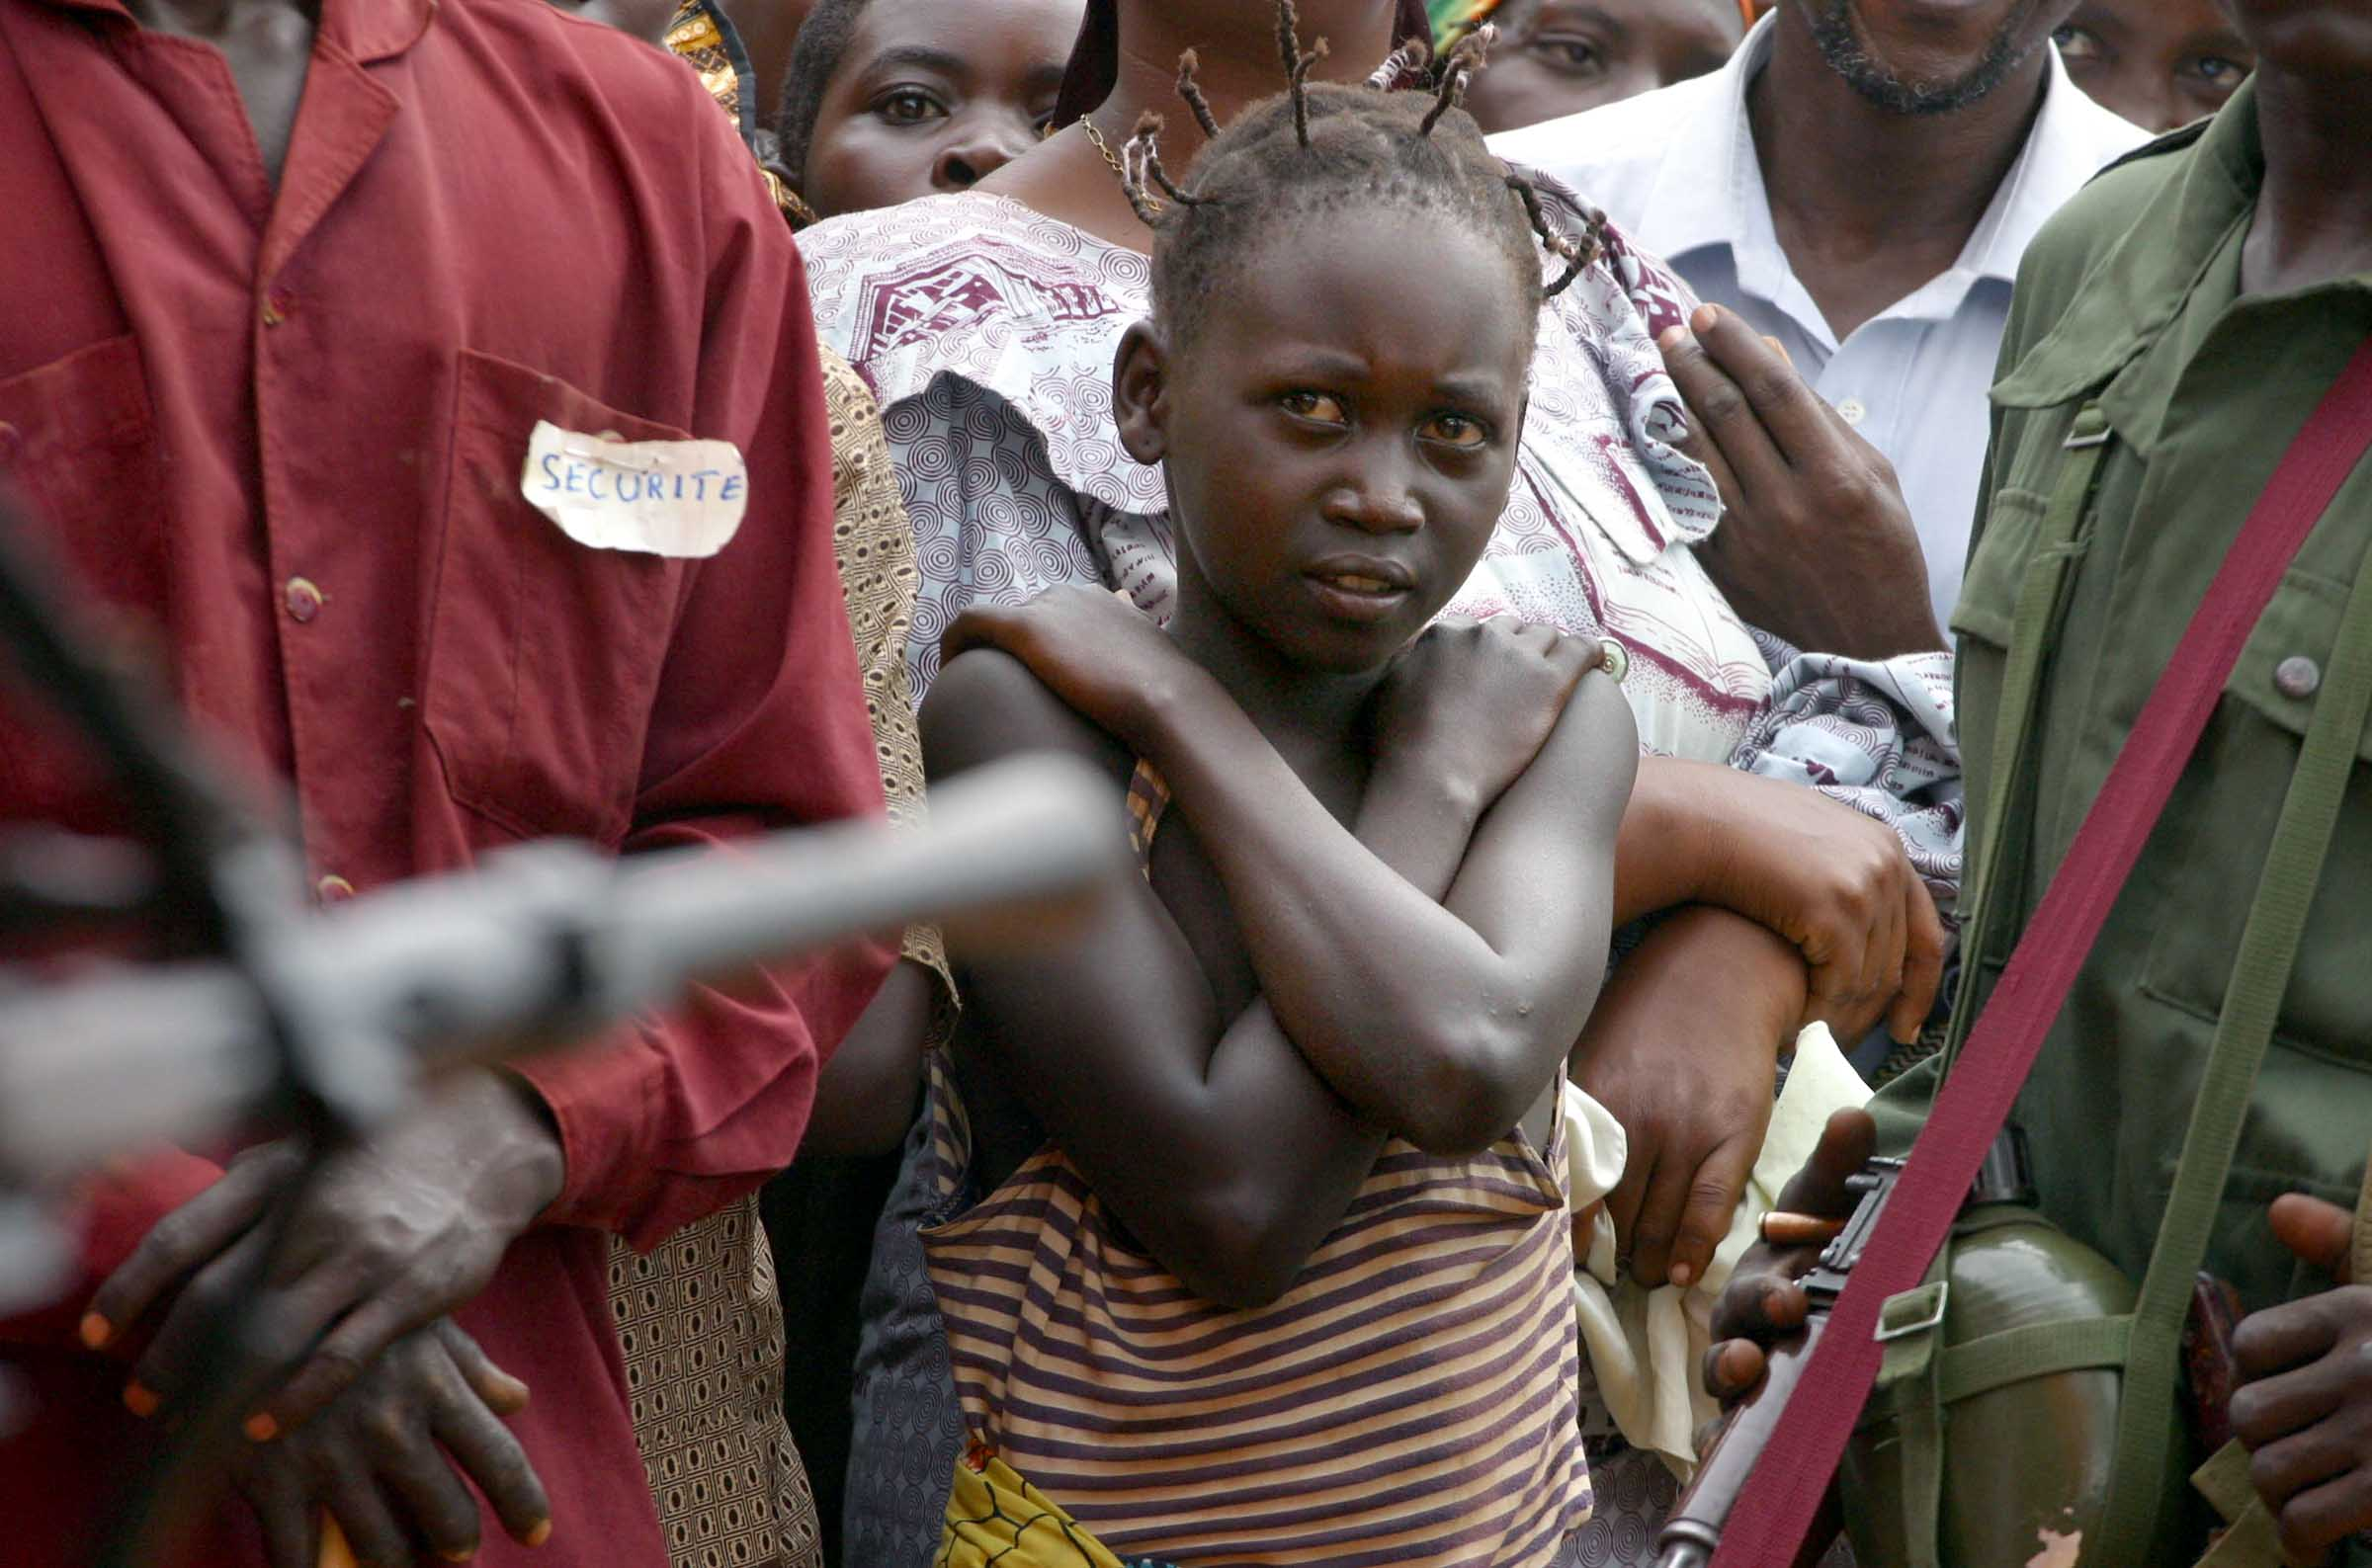 A young girl watches a rally for UPC president Thomas Lubanga, guarded by UPC soldiers in the village of Iga Barriere in Eastern Democratic Republic of Congo.